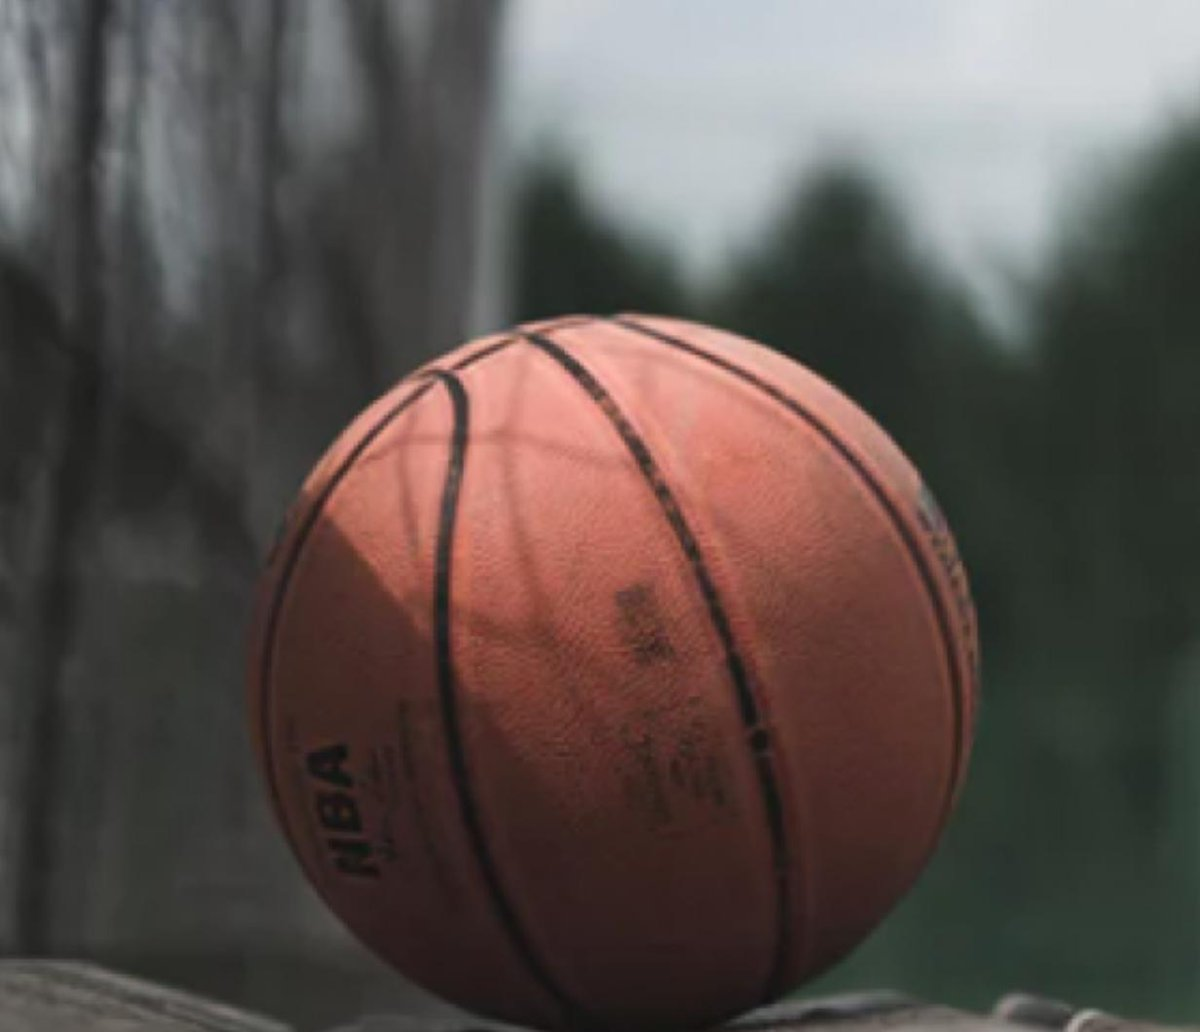 The NBA playoffs are heating up and the under has been the money maker so far. However, don't forget to check out our #NBA betting guide so you know what to look for. https://www.denversportsbetting.com/news/2019/02/betting-nba-what-factors-look…  @CliffRod303 @RRyan303